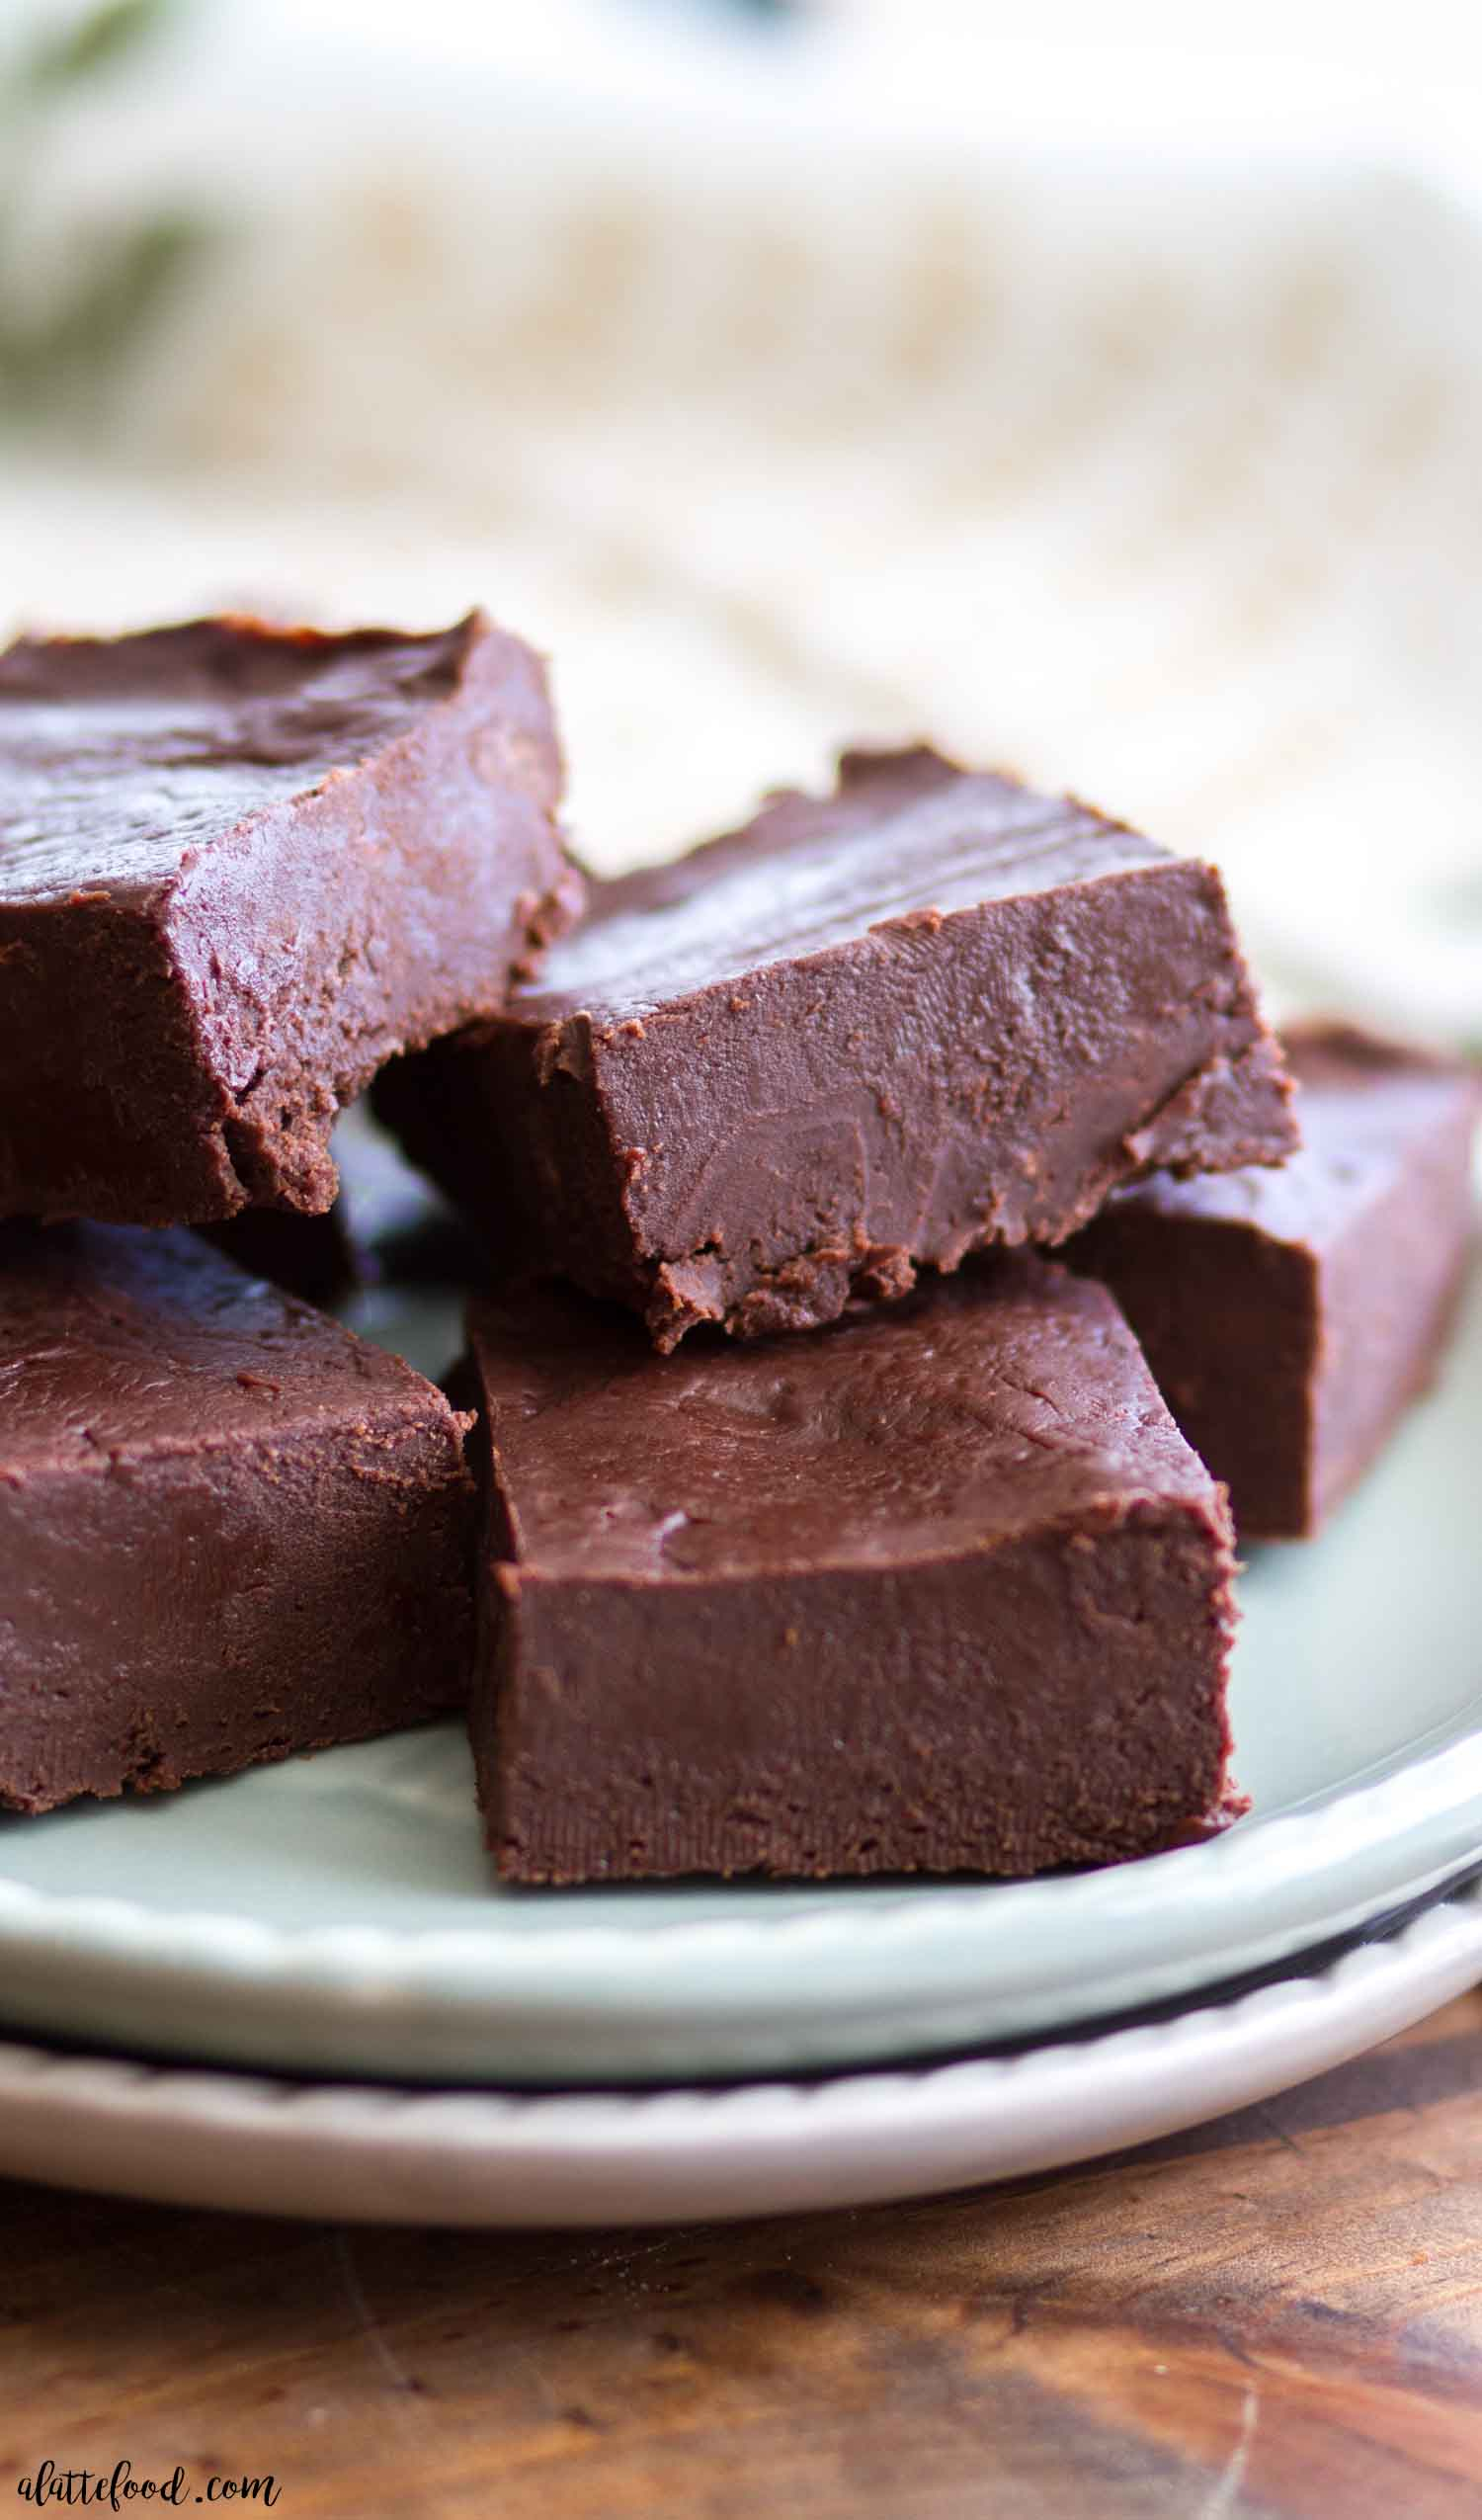 This Easy Chocolate Fudge Recipe is made with just a few ingredients and it comes out perfectly every single time! You don't need a candy thermometer or any fancy tools either.